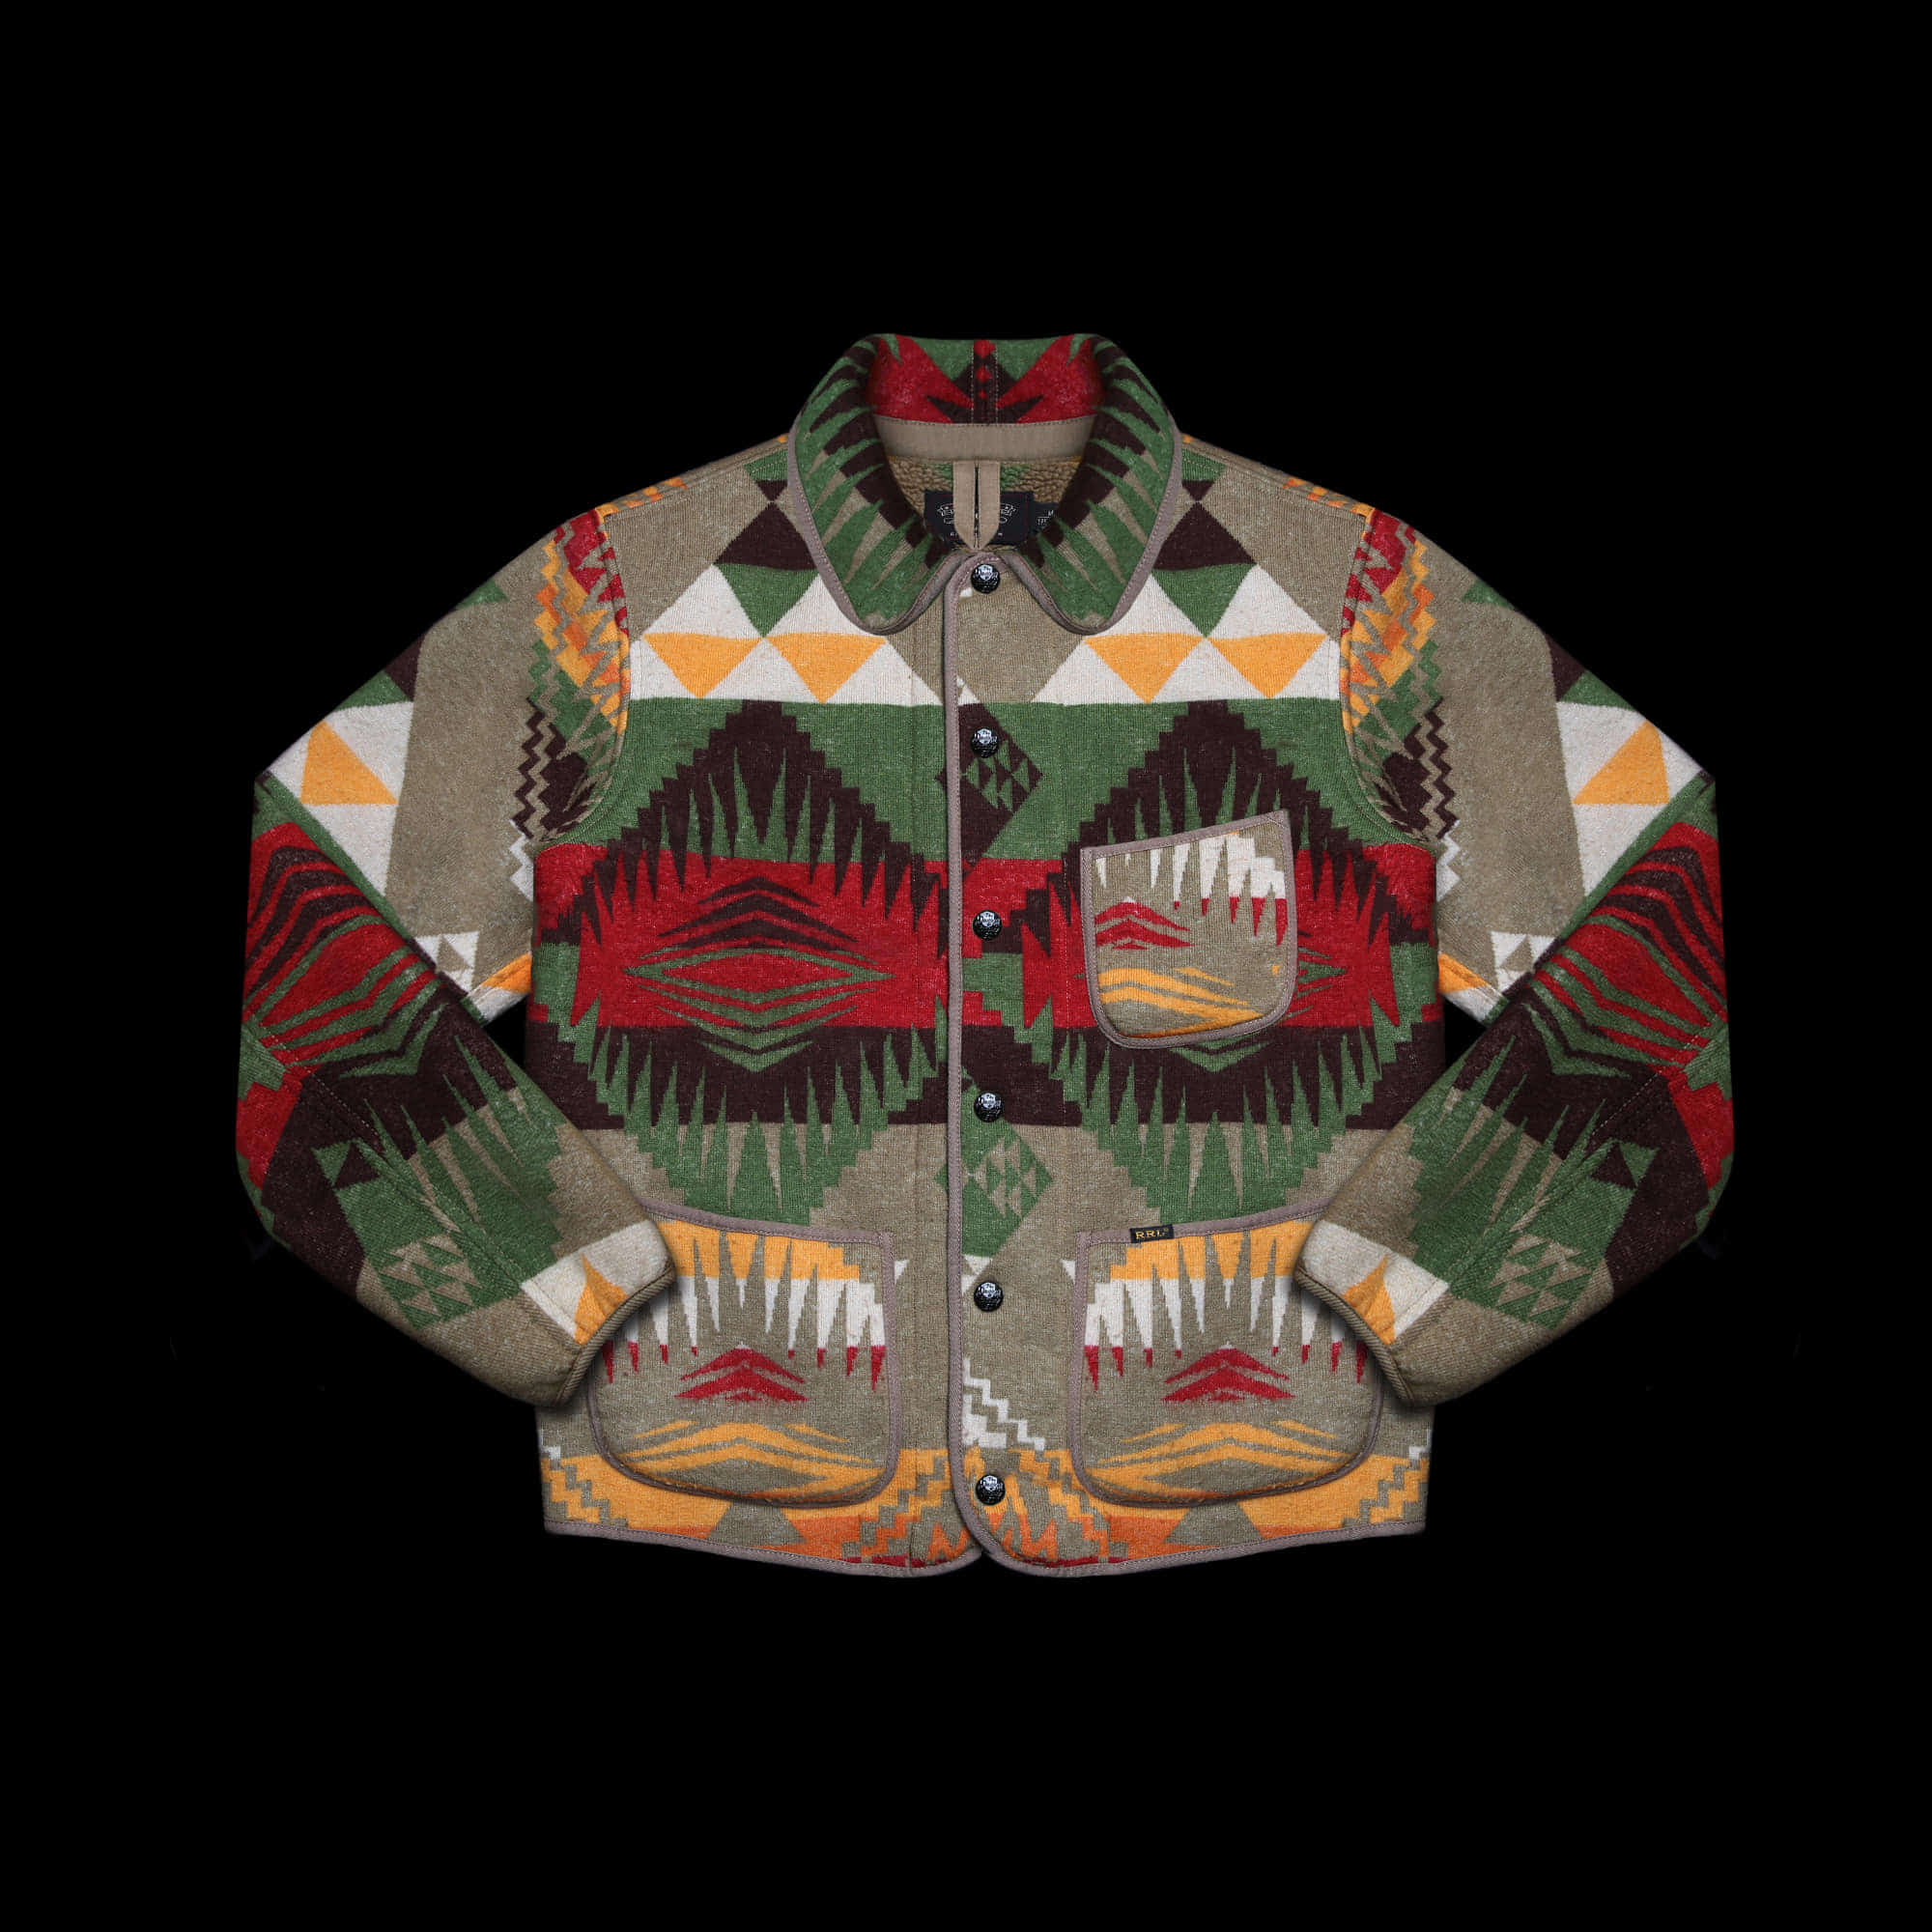 RRLCARTWRIGHT SHERPANATIVE JACKET